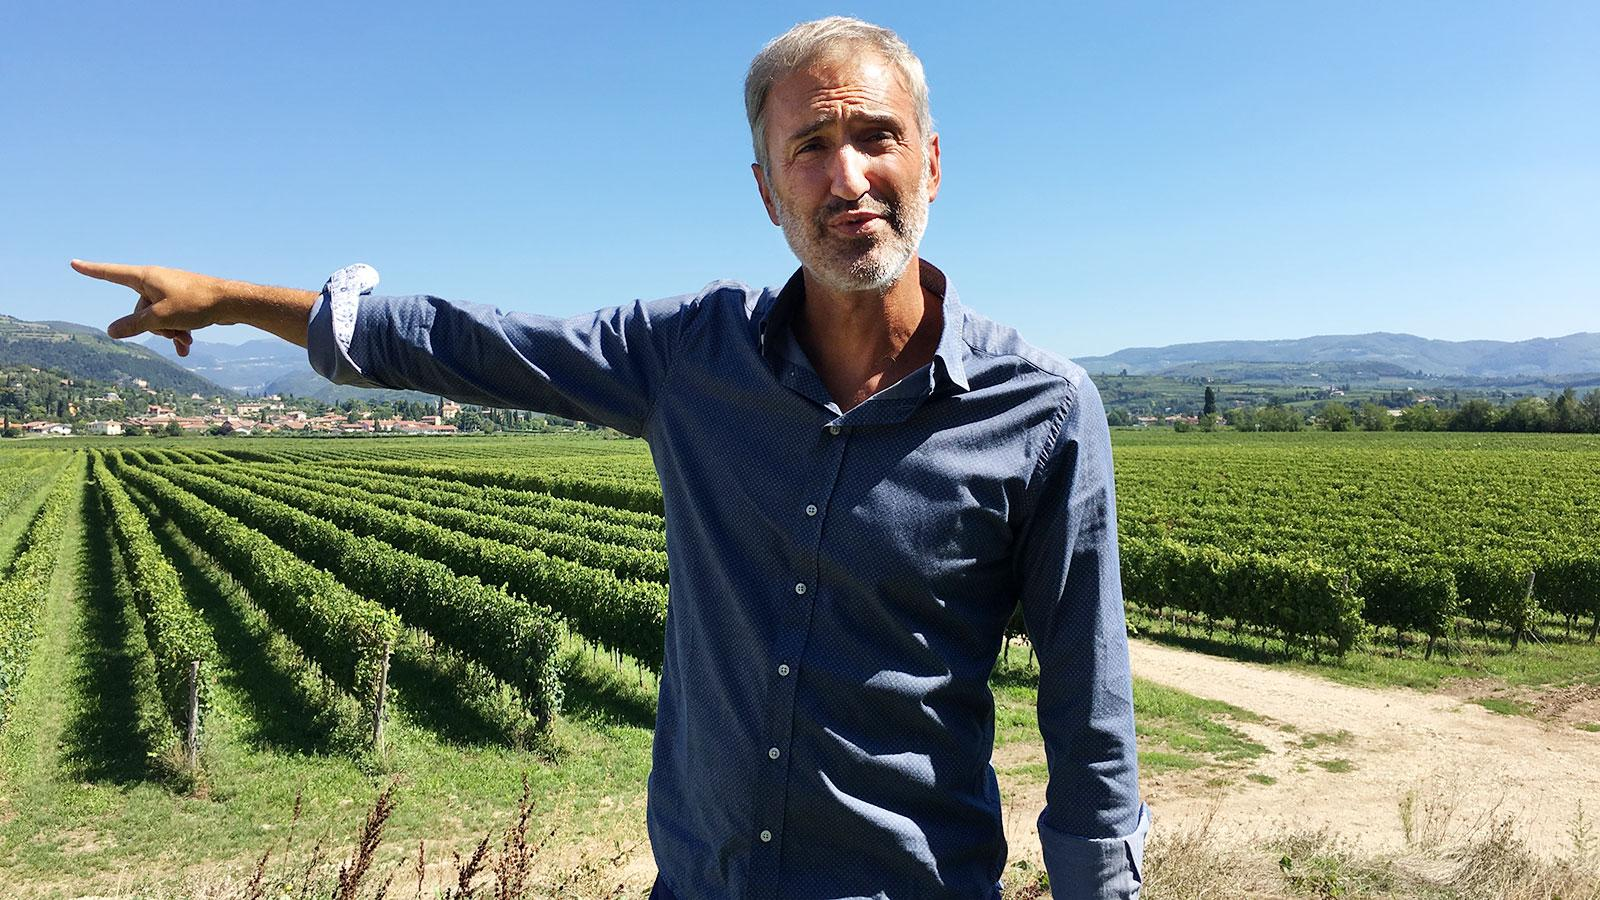 Mariano Buglioni's life changed when his family bought a farmhouse with a Valpolicella vineyard.